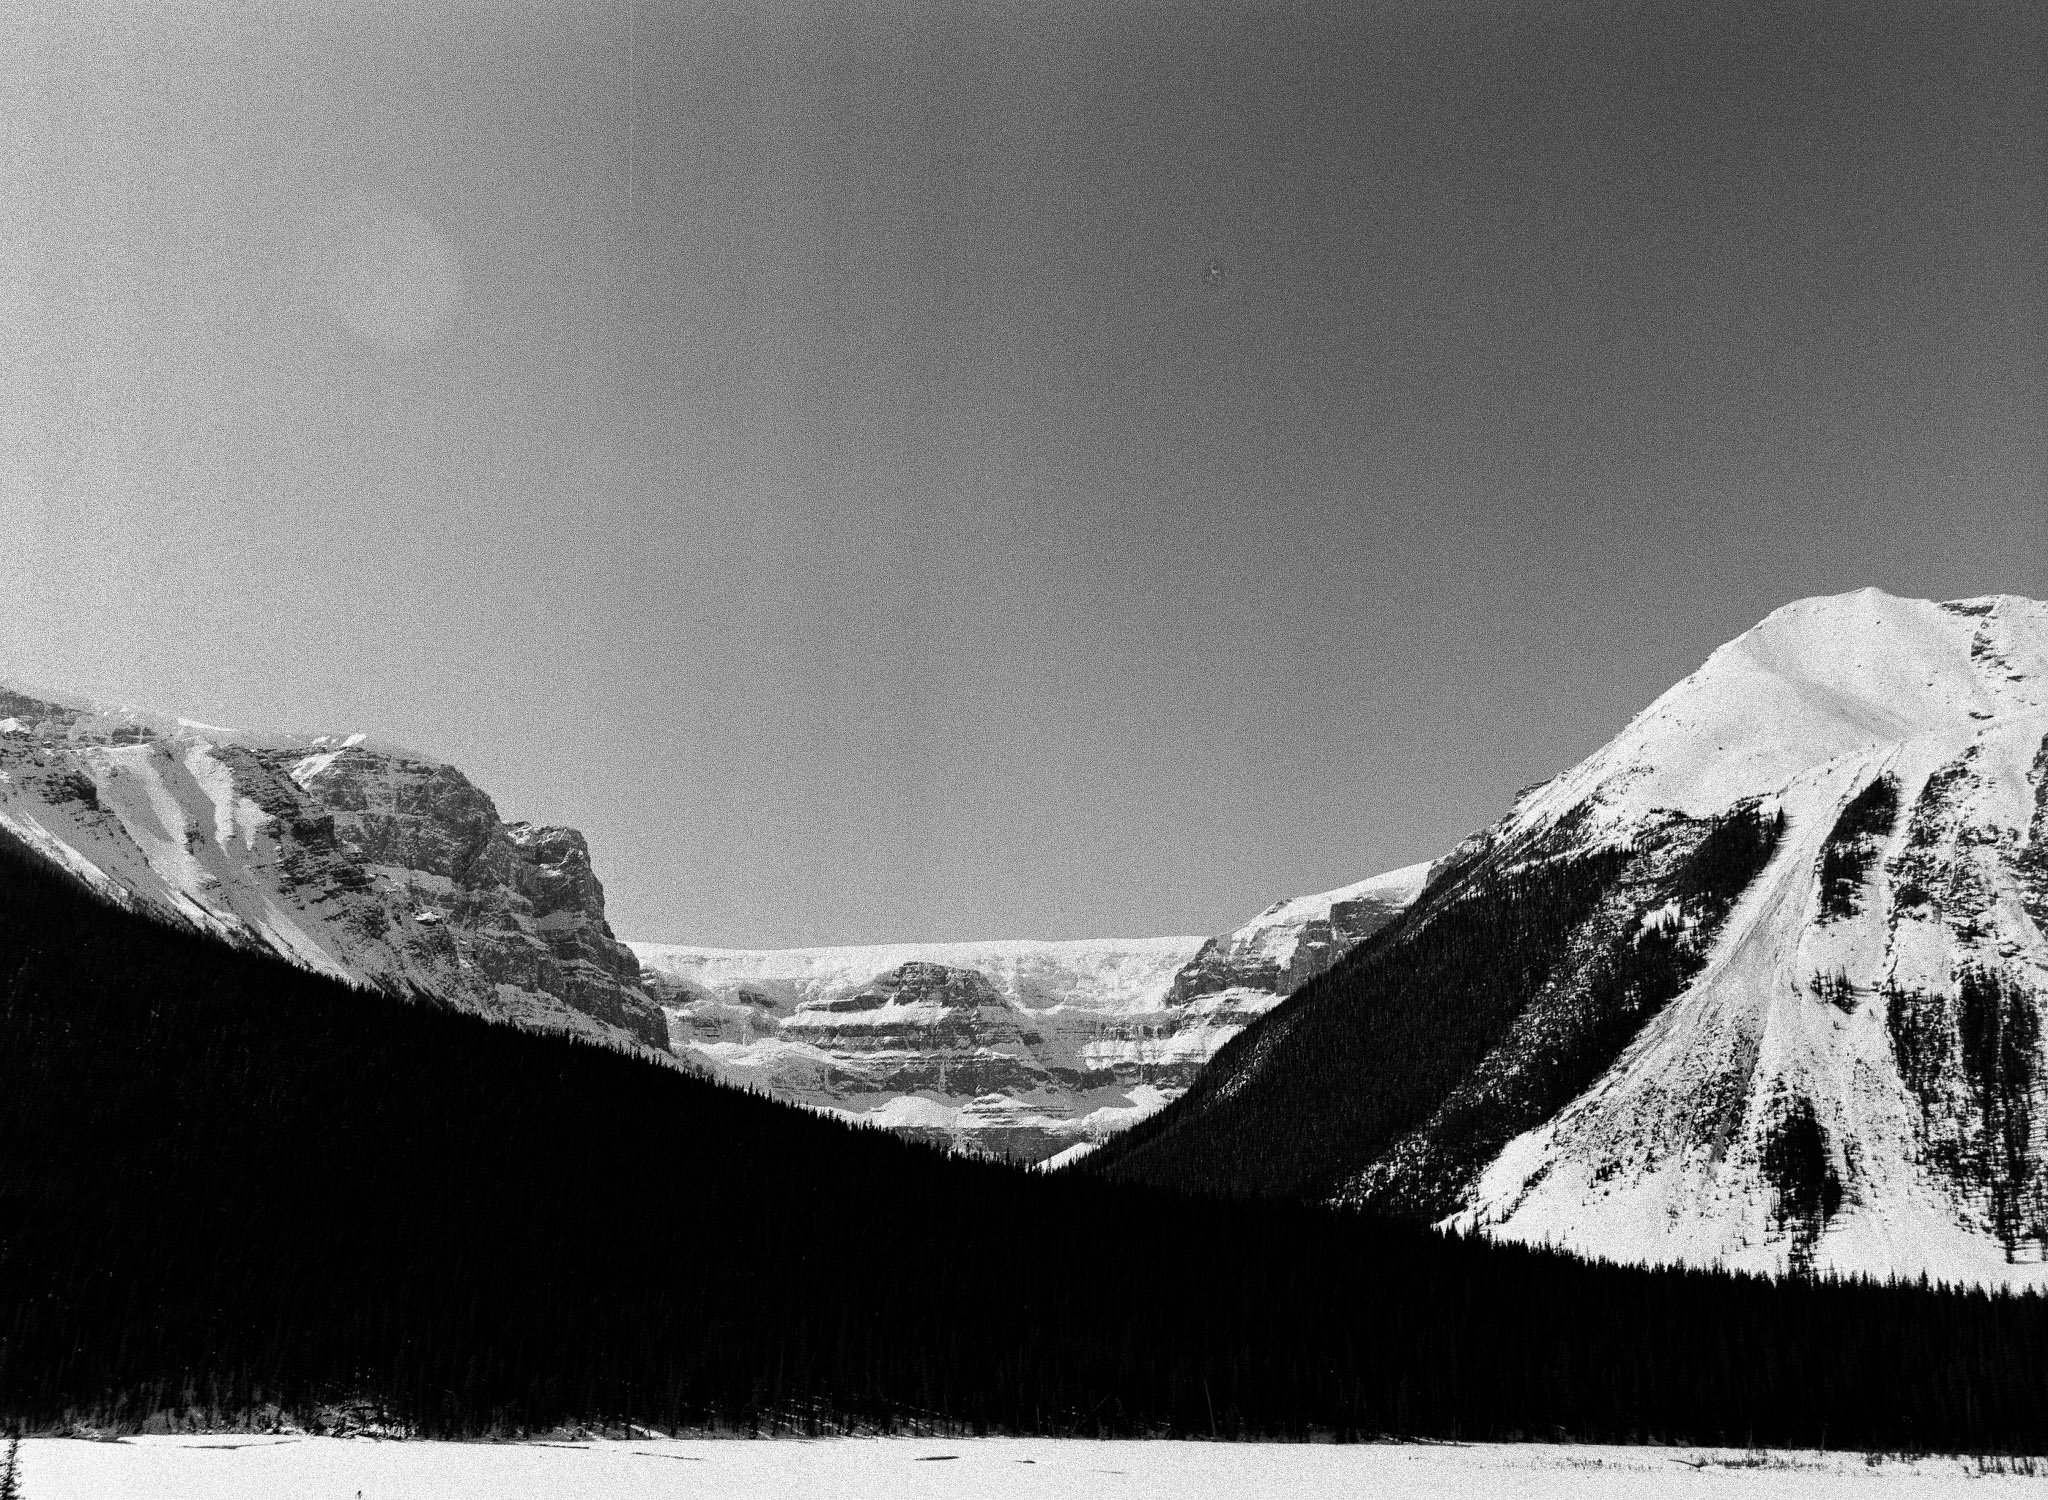 Layercake mountains and sprawling glaciers. // TMAX400